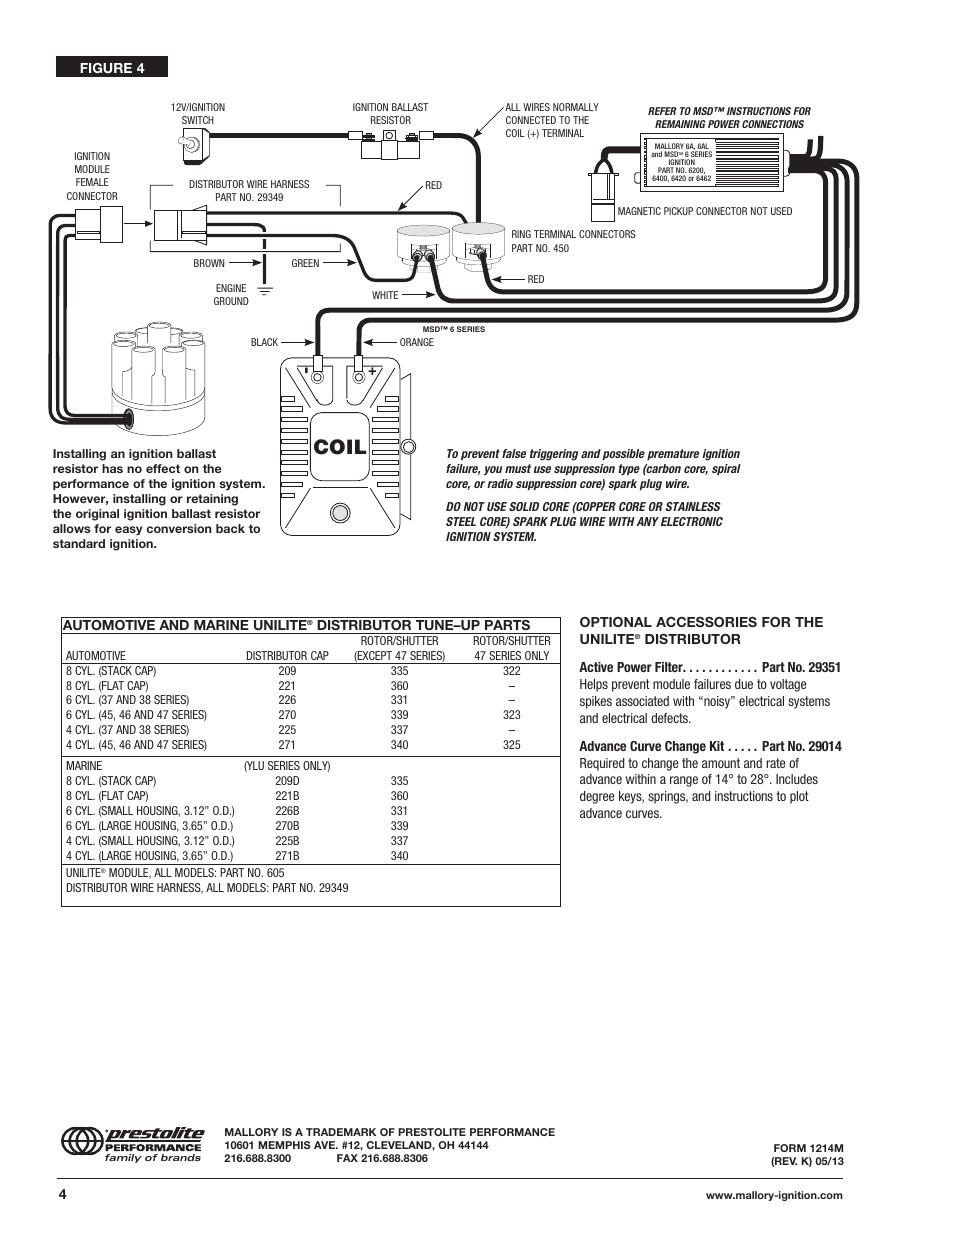 mallory ignition mallory unilite distributor 37_38_45_47 page4 coil mallory ignition mallory unilite distributor 37_38_45_47 mallory unilite module wiring diagram at sewacar.co